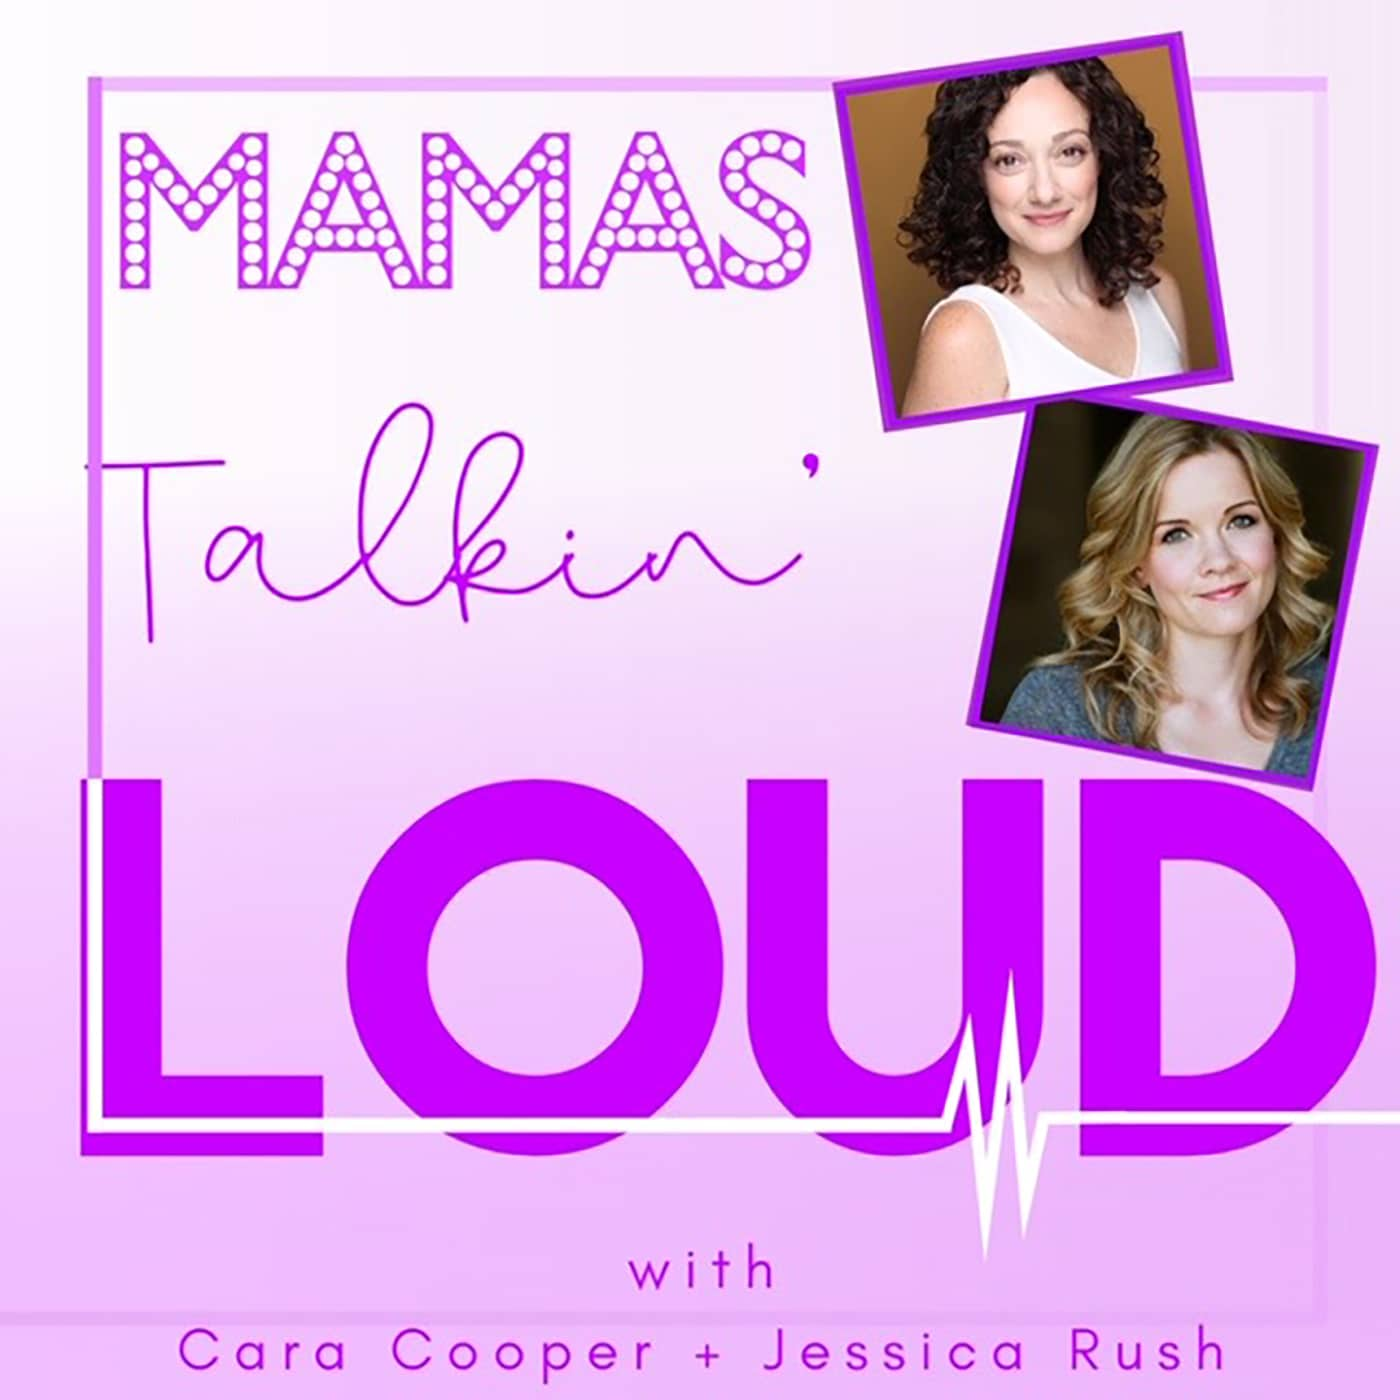 Mamas Talkin Loud Episode 3 Megan McGinnis and Becky Gulsvig